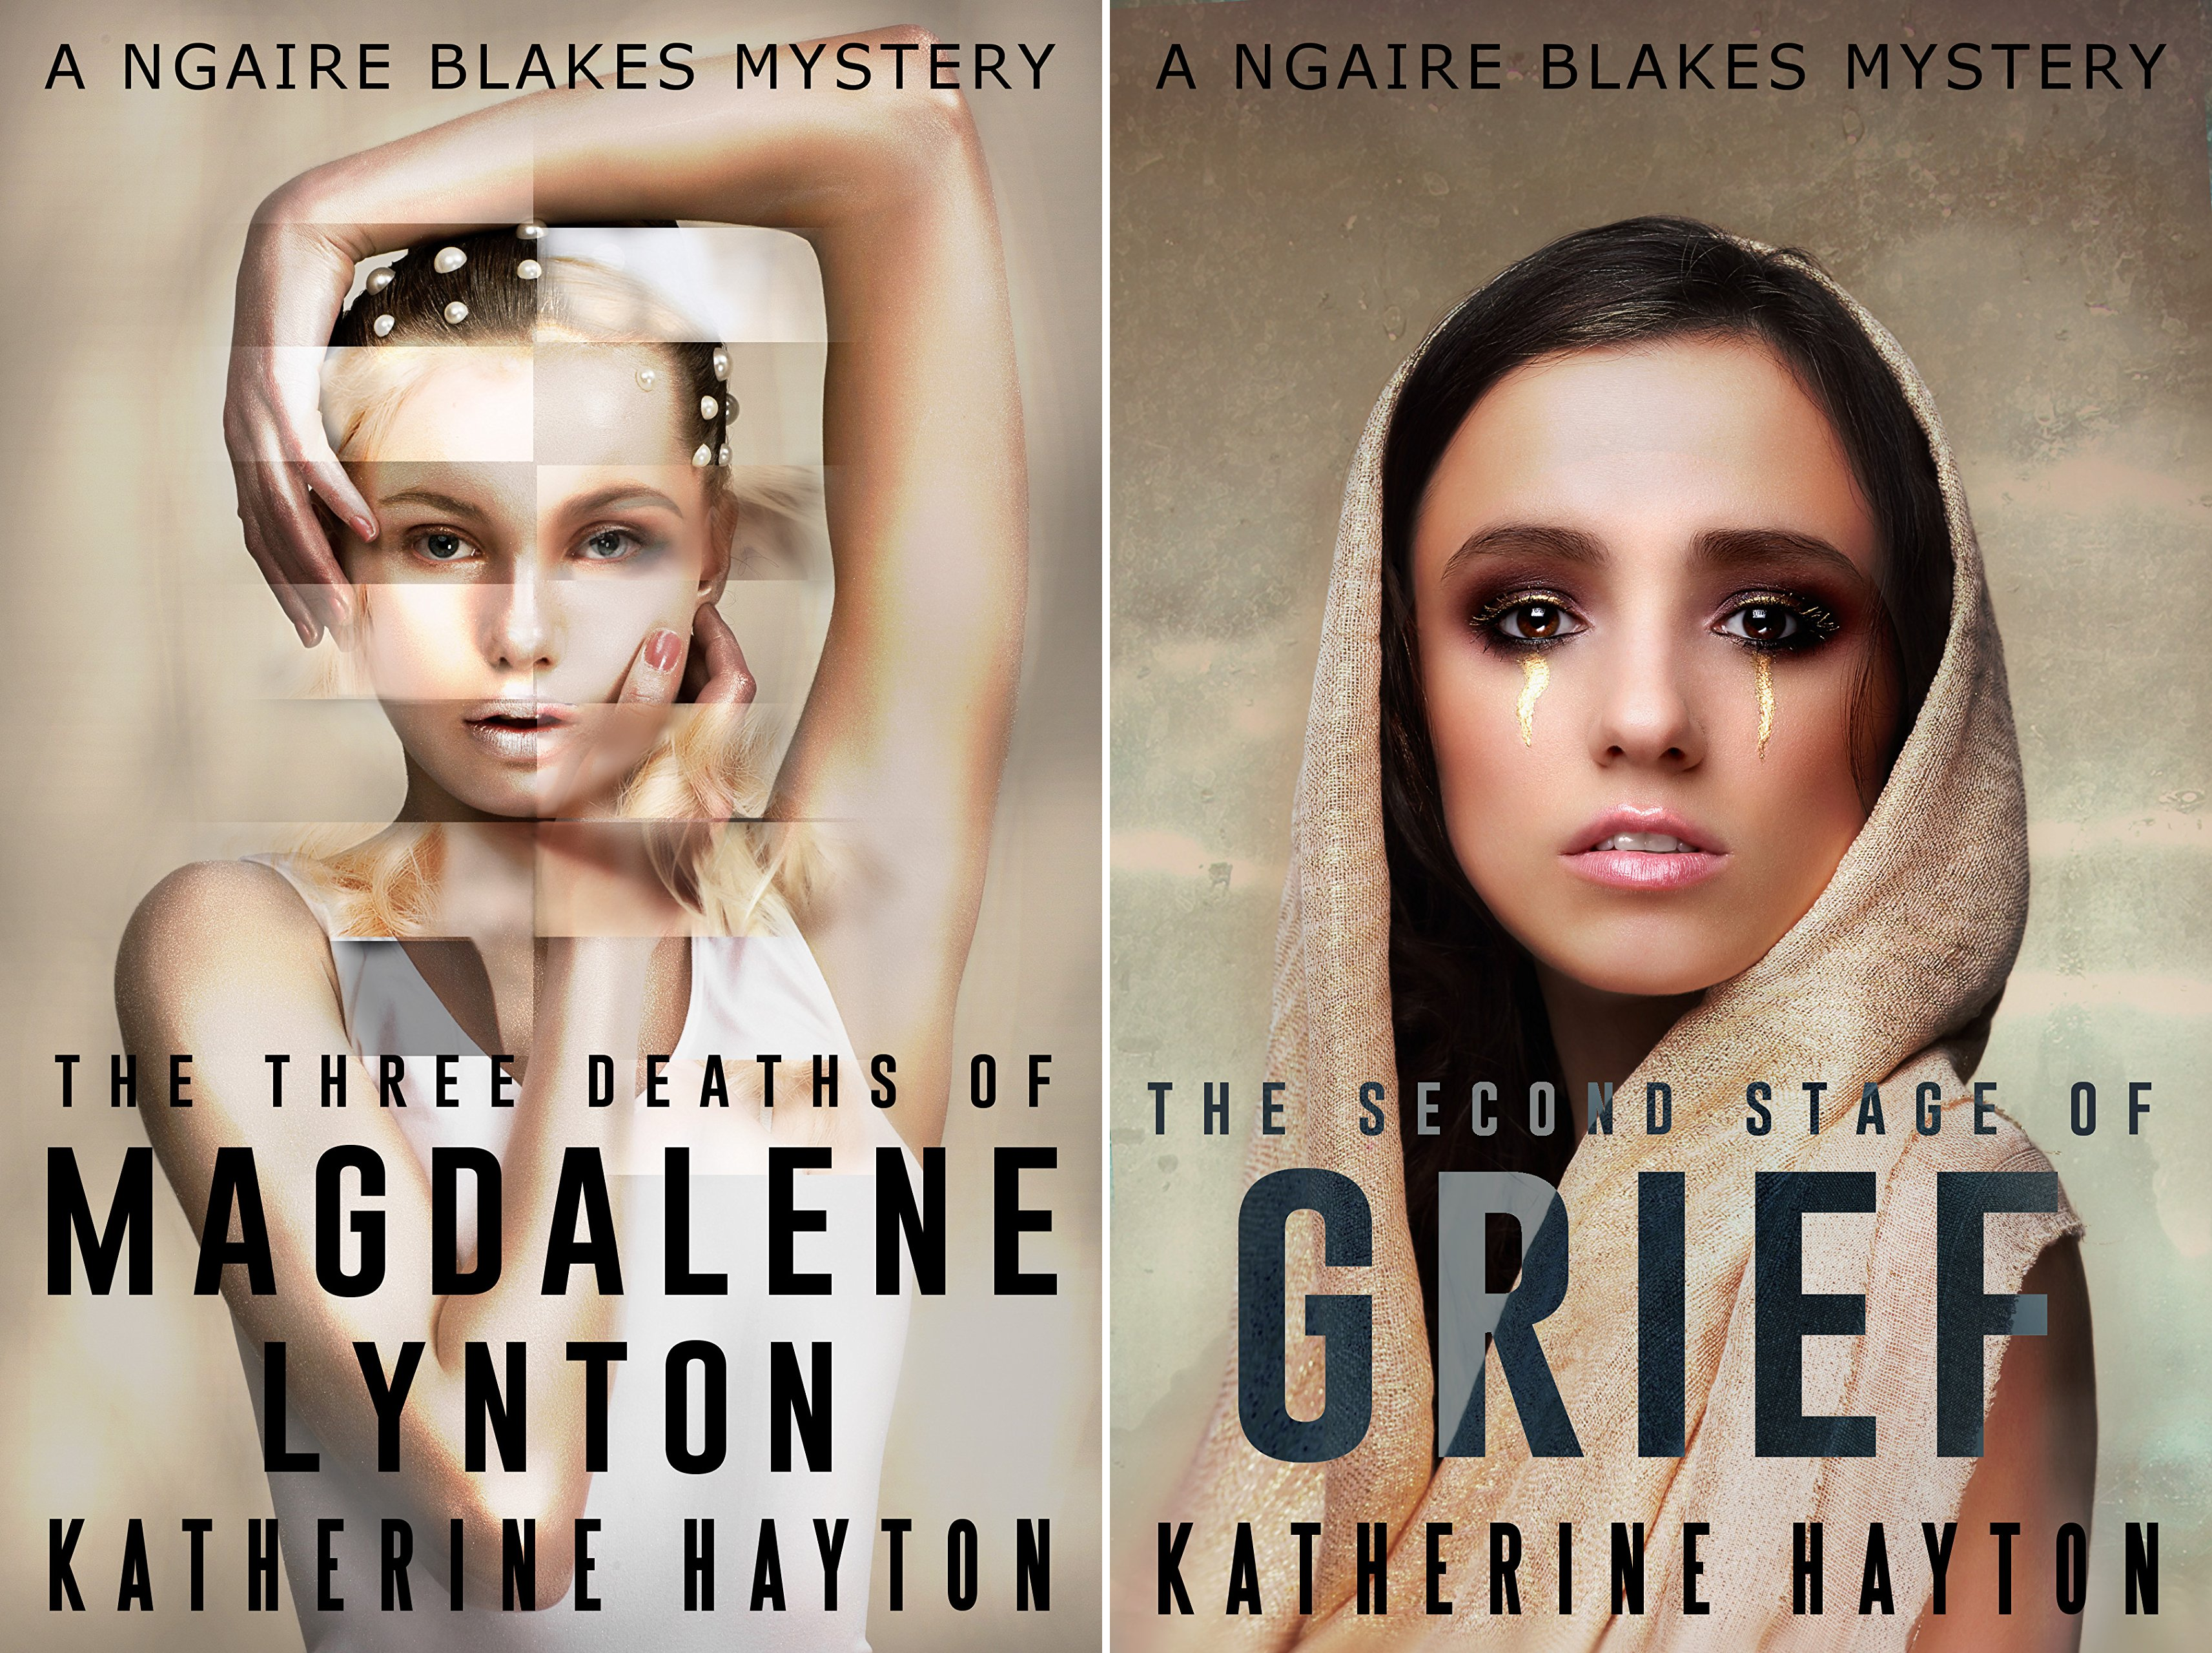 A Ngaire Blakes Mystery (2 Book Series)